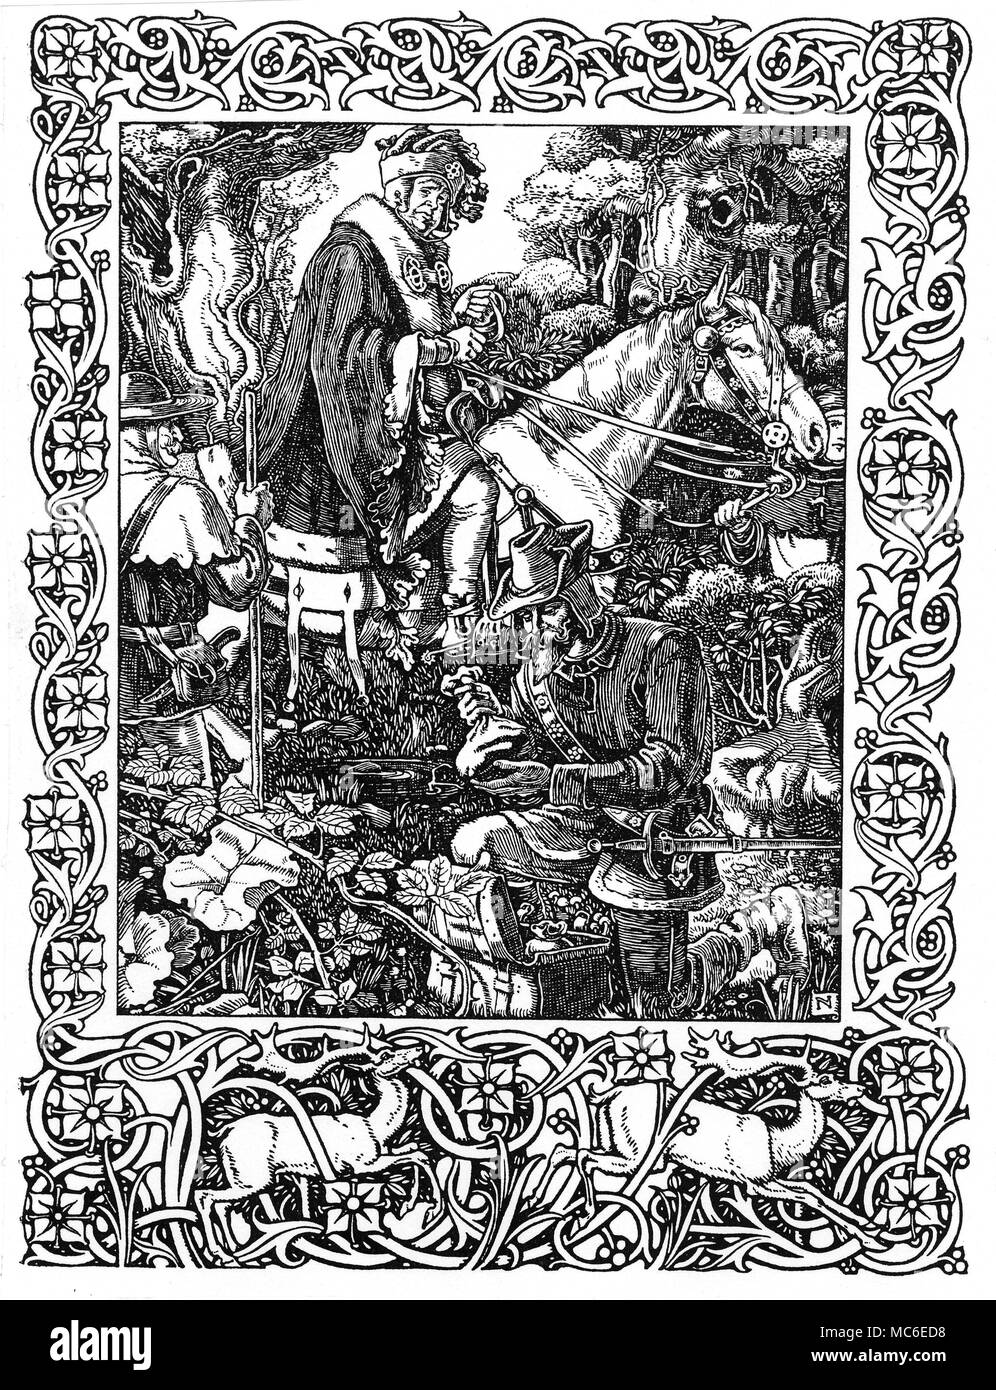 MYTHOLOGY - ROBIN HOOD Robin Hood and his Merry Men relieving the Sheriff of Nottingham of his wealth in Sherwood Forest.  From The Noble Birth and Gallant Atchievements of that Remarkable Outlaw, Robin Hood, by 'An Ingenious Antiquary'. - Stock Image